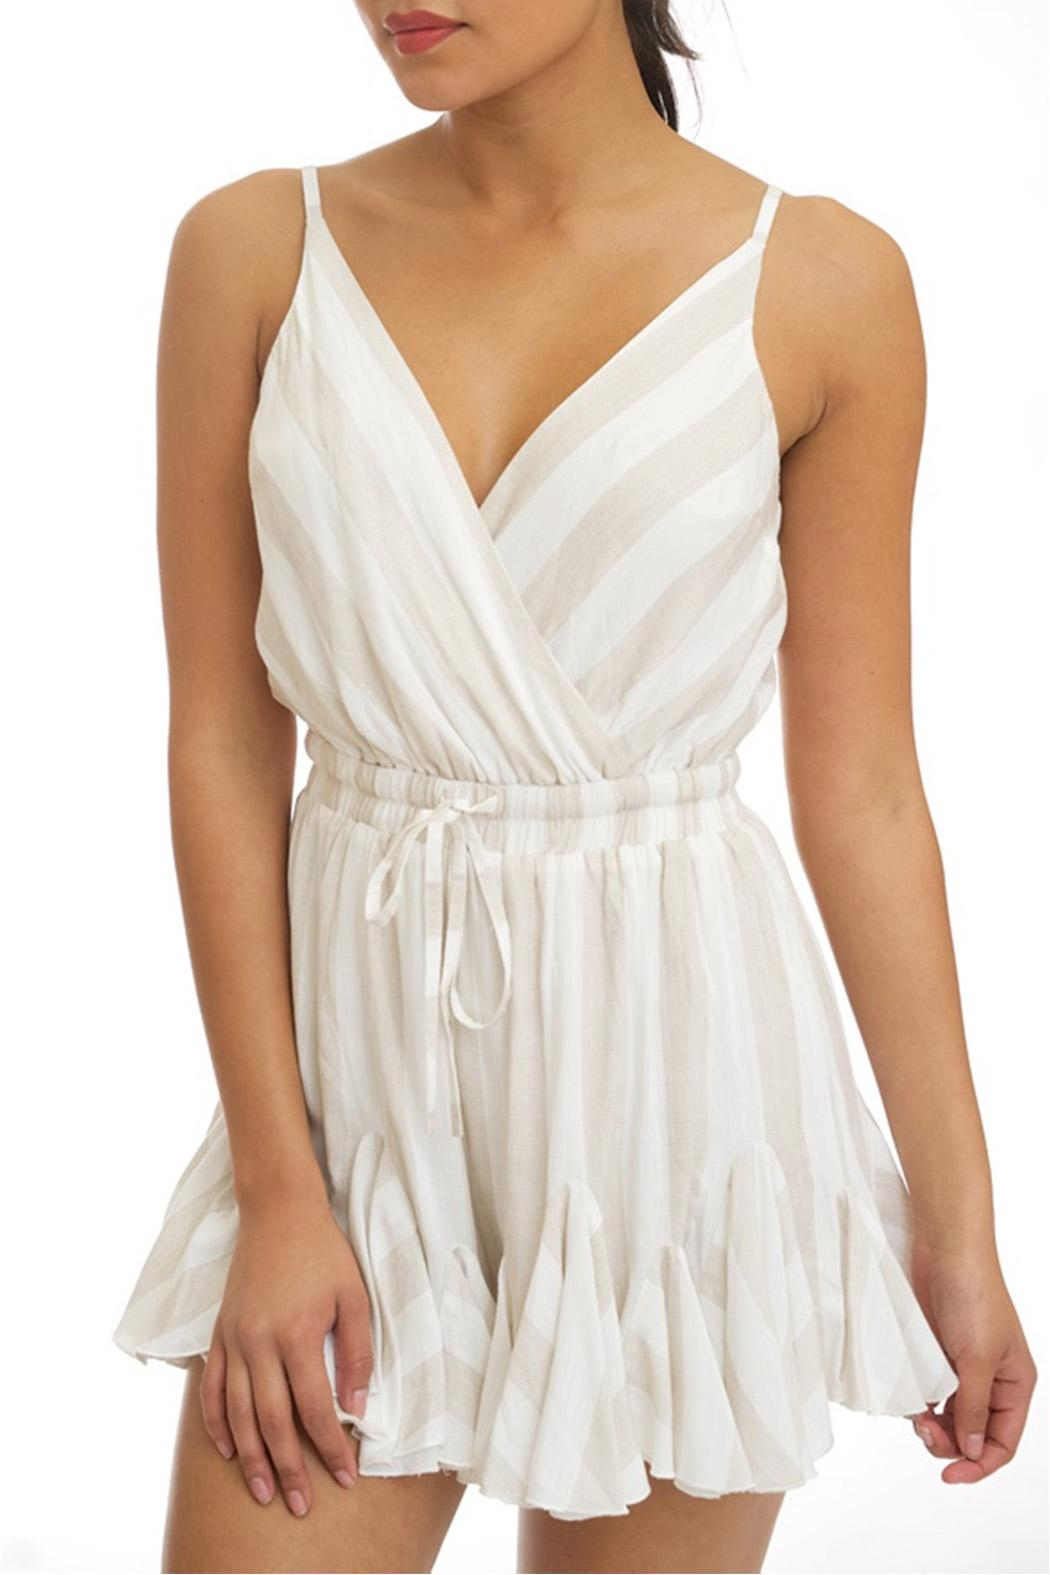 luxxel Neutral Stripe Romper - Front Cropped Image